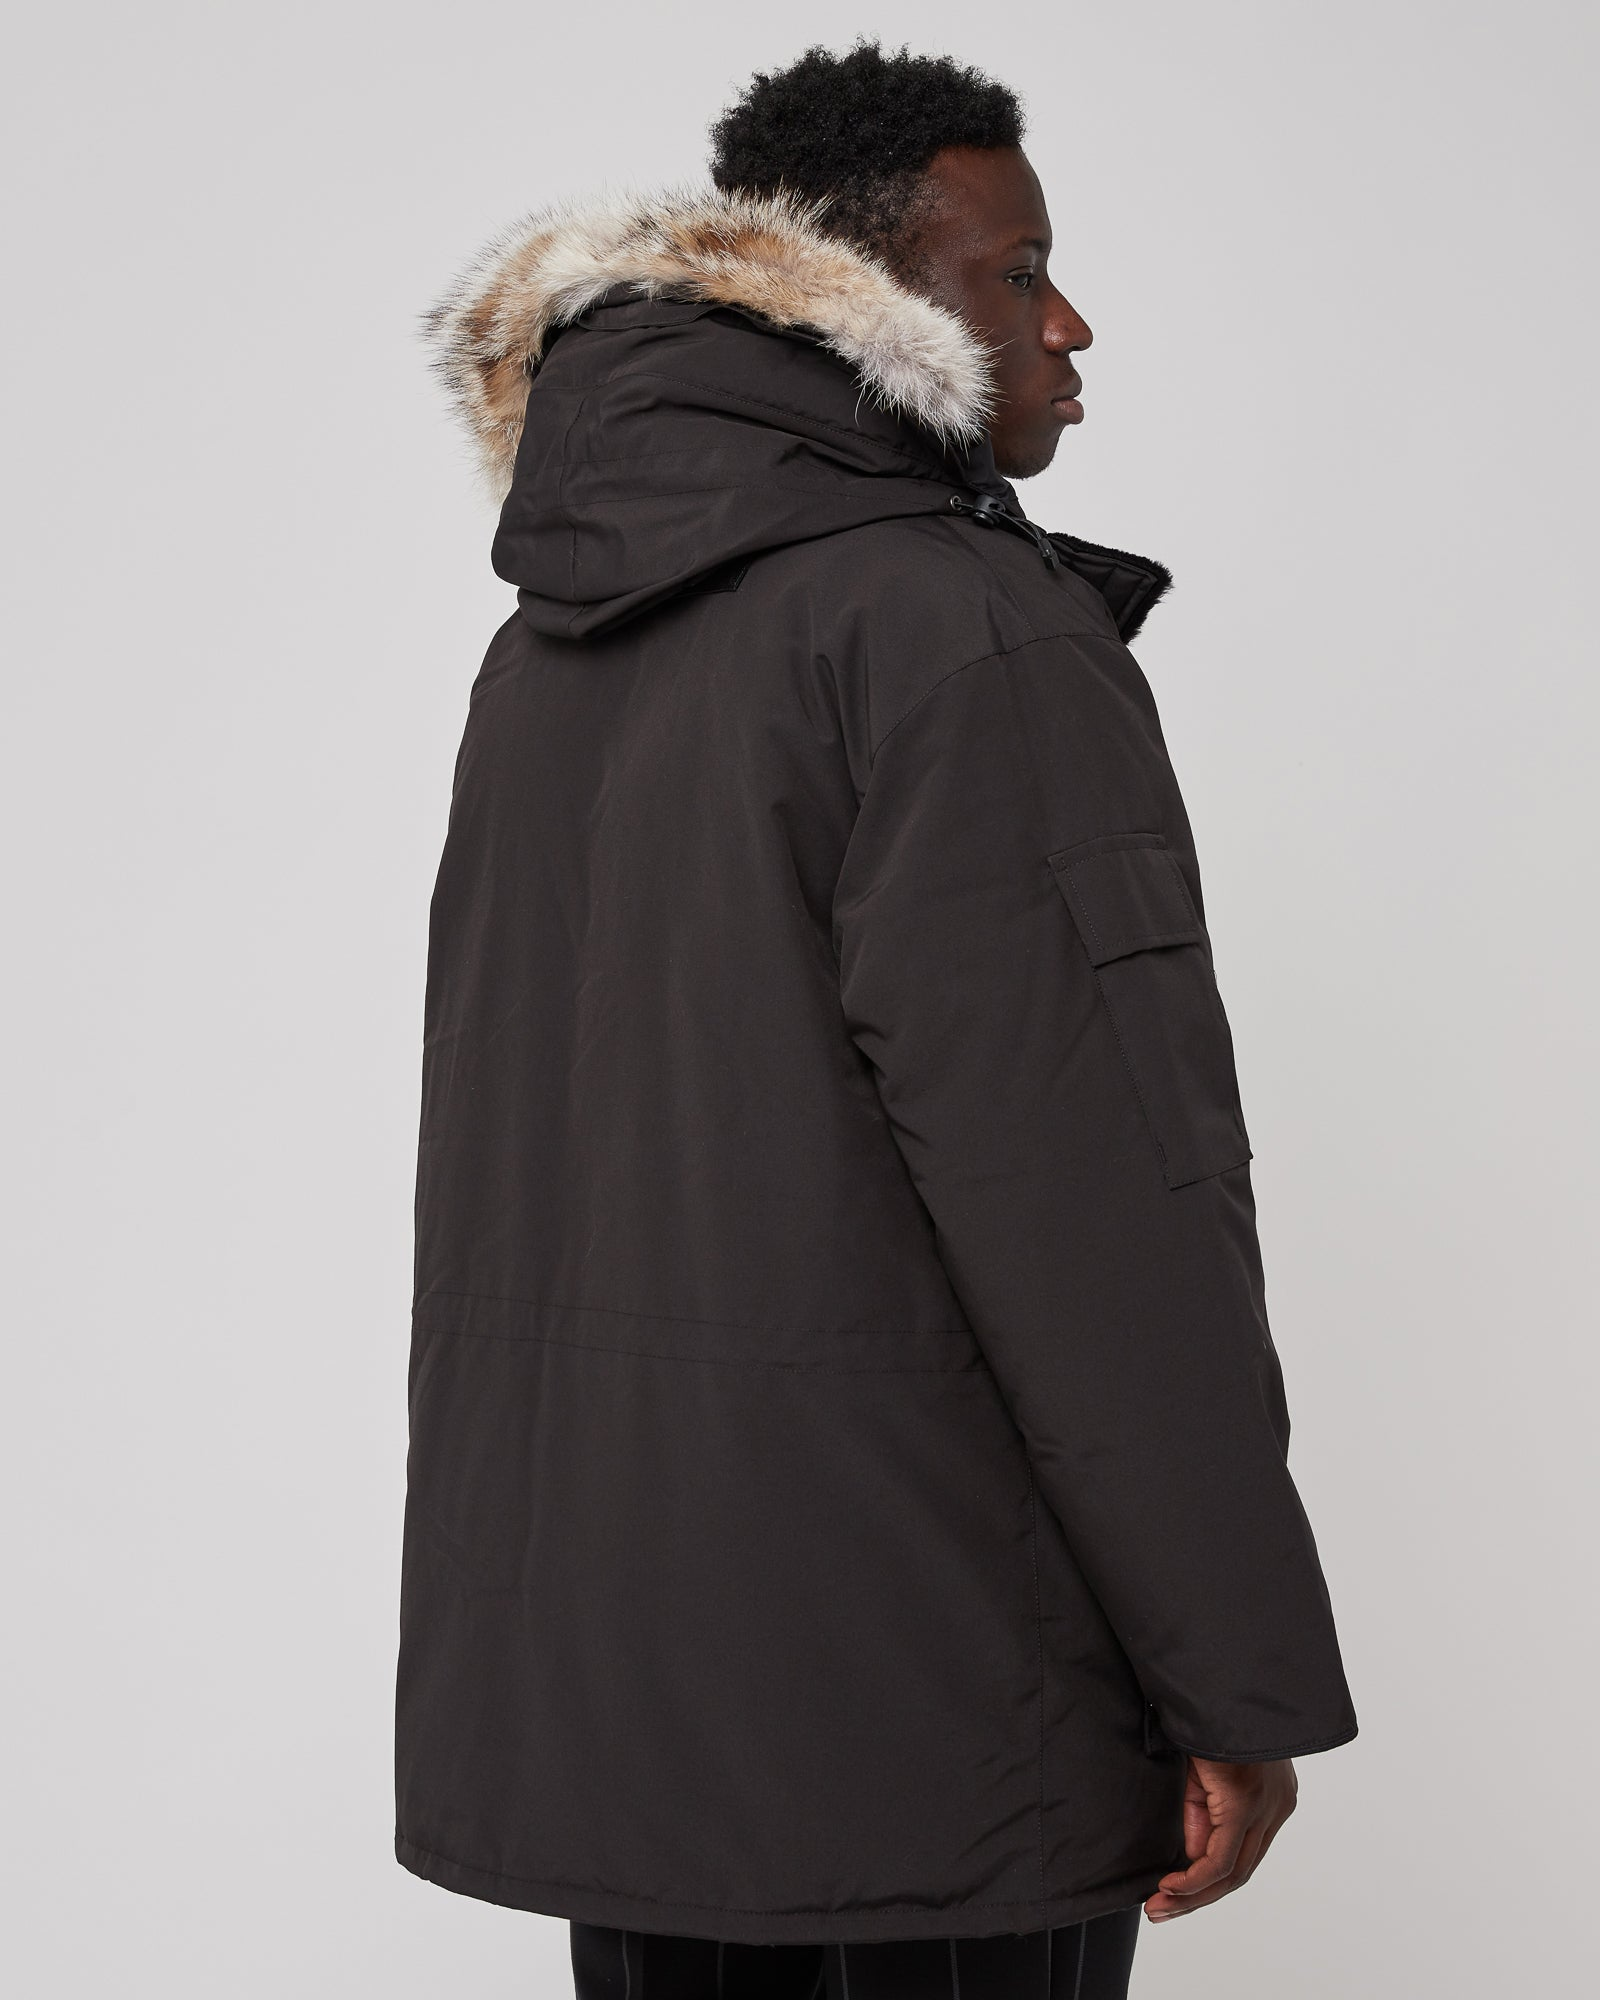 Expedition Parka In Black